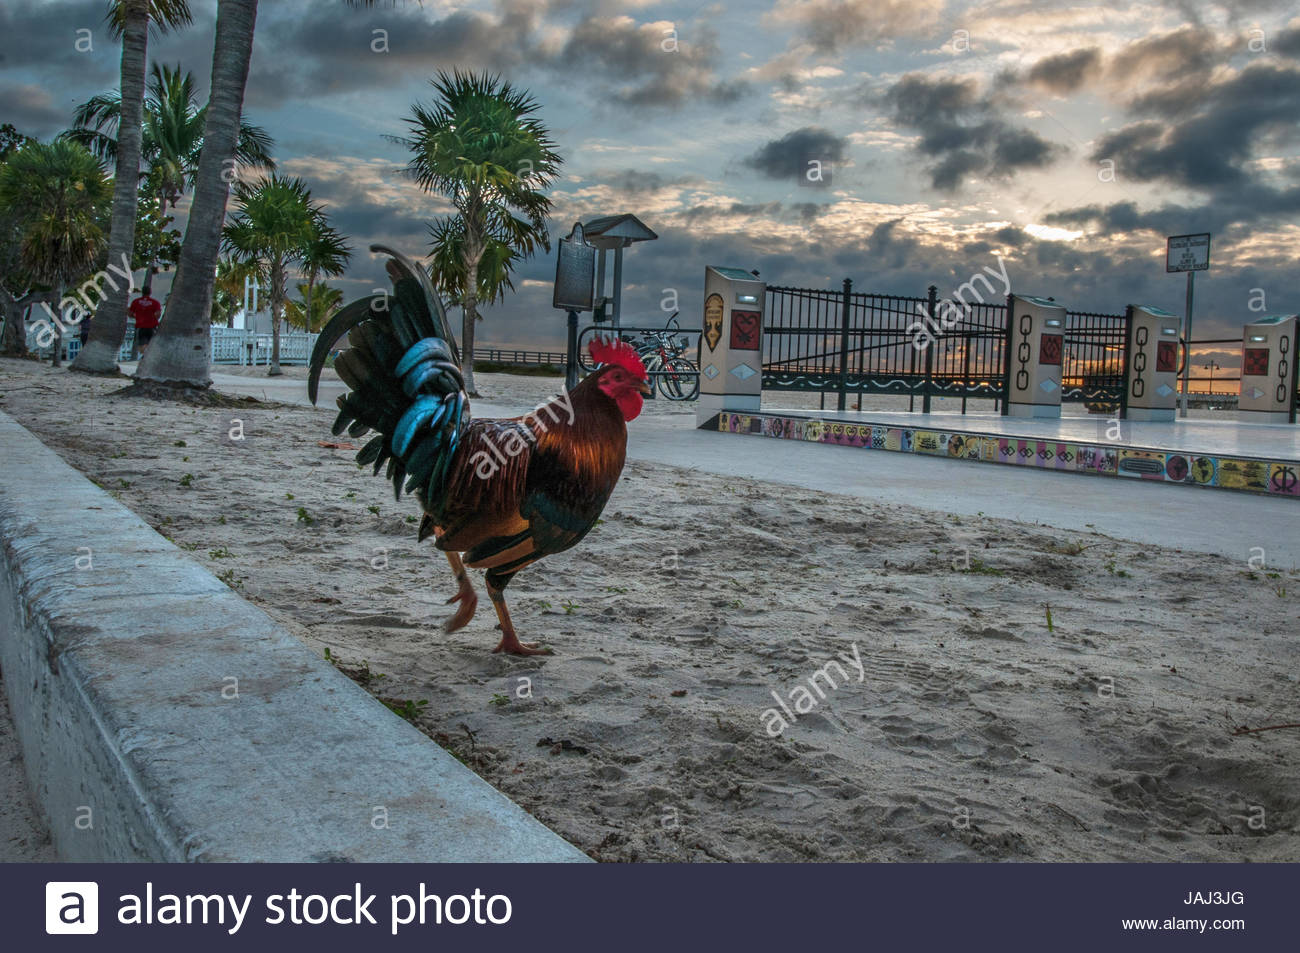 Rooster en Playa de Higgs en Key West, Florida. Imagen De Stock